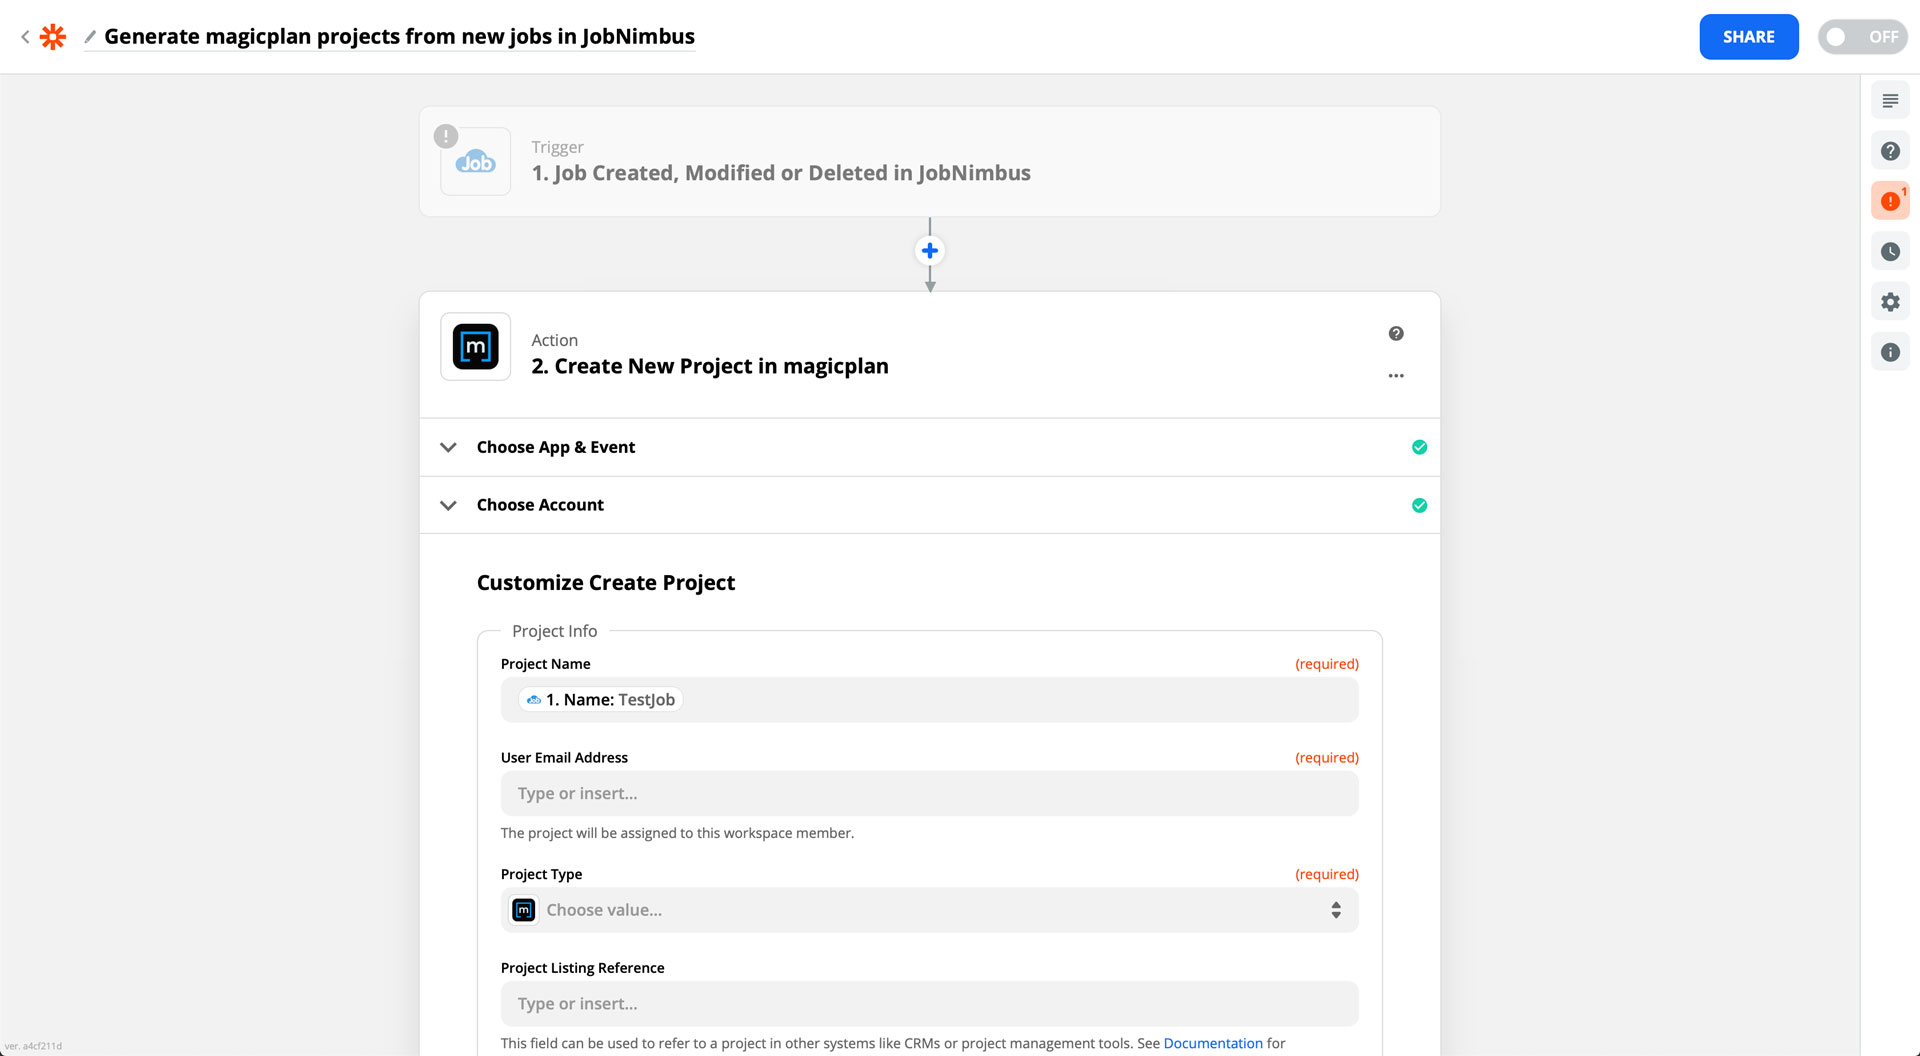 integrations-jobnimbus-screenshot